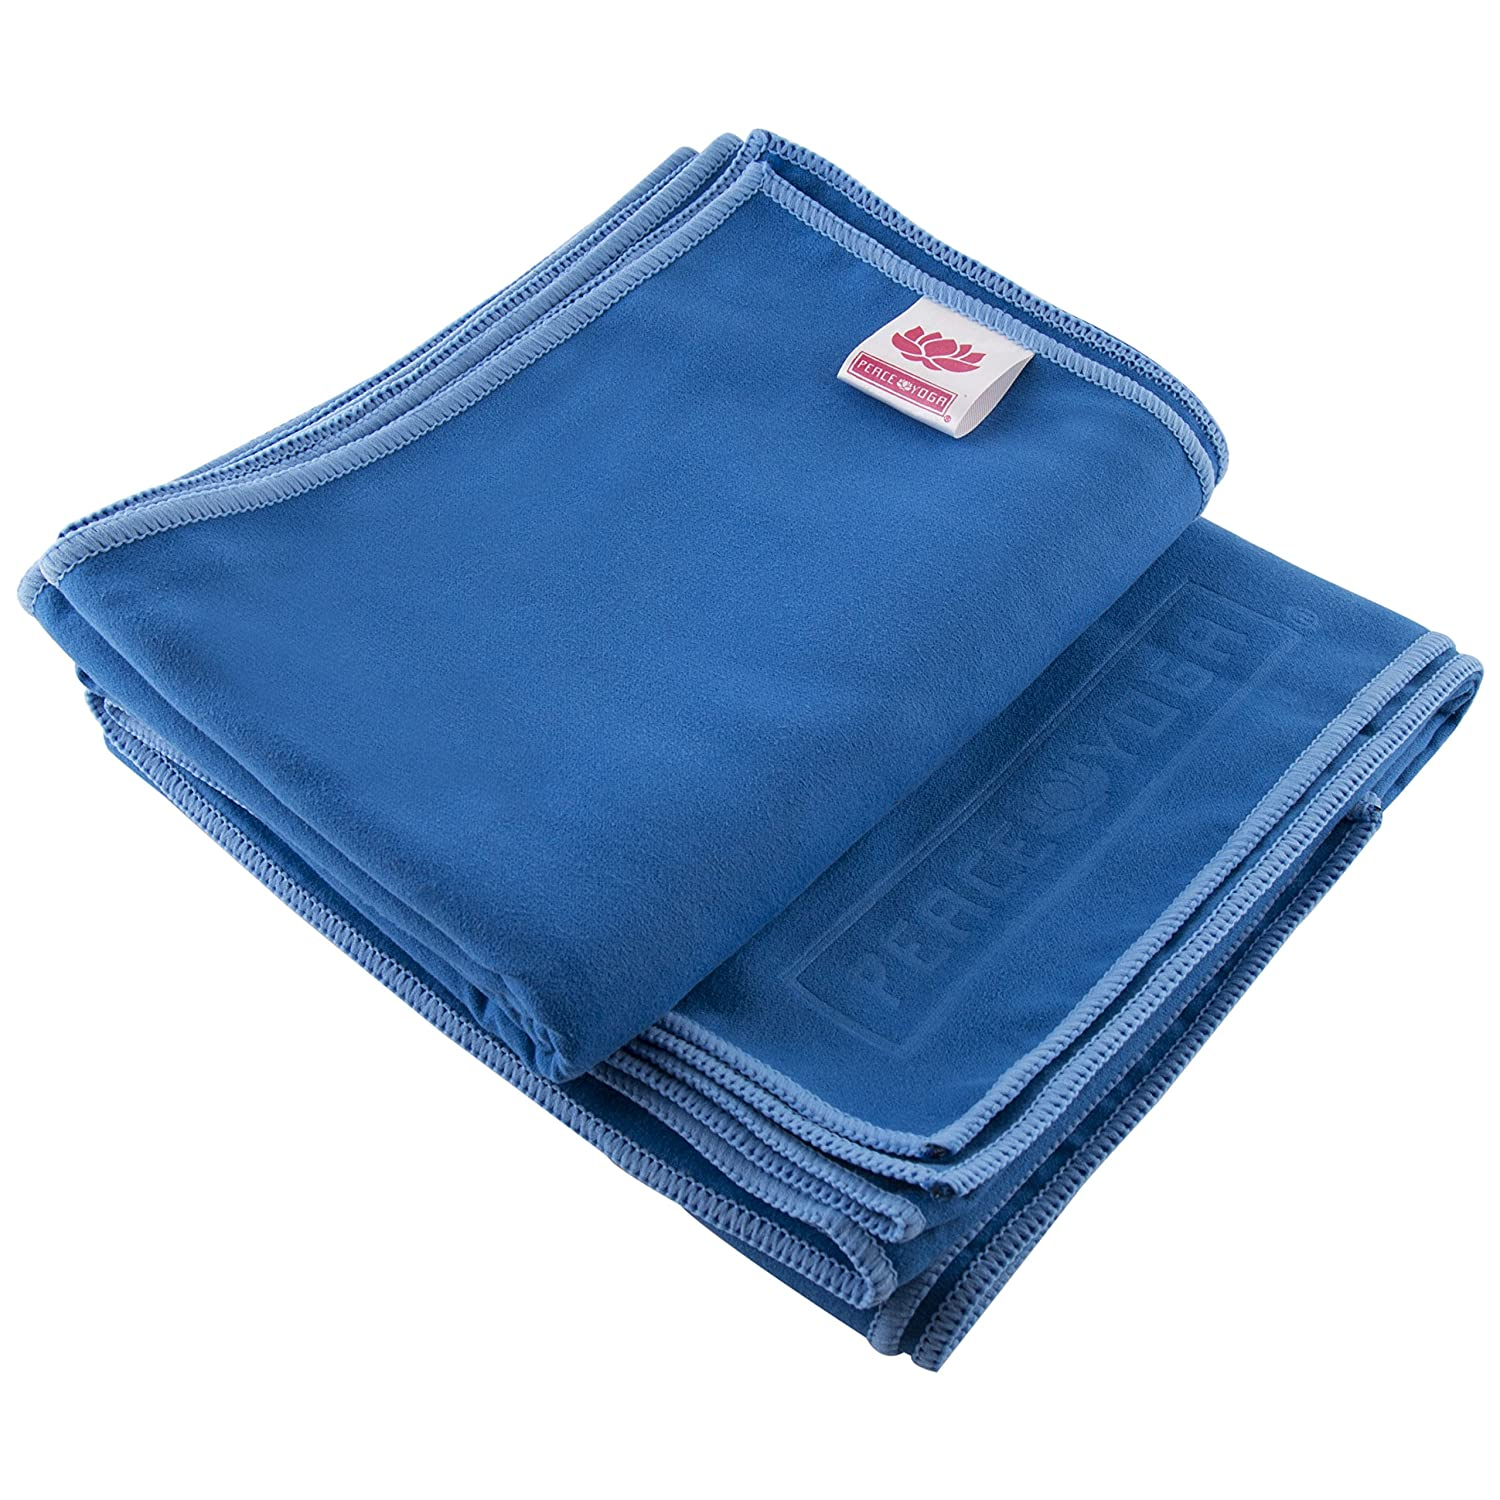 Peace Yoga Non Slip Suede Exercise Towels